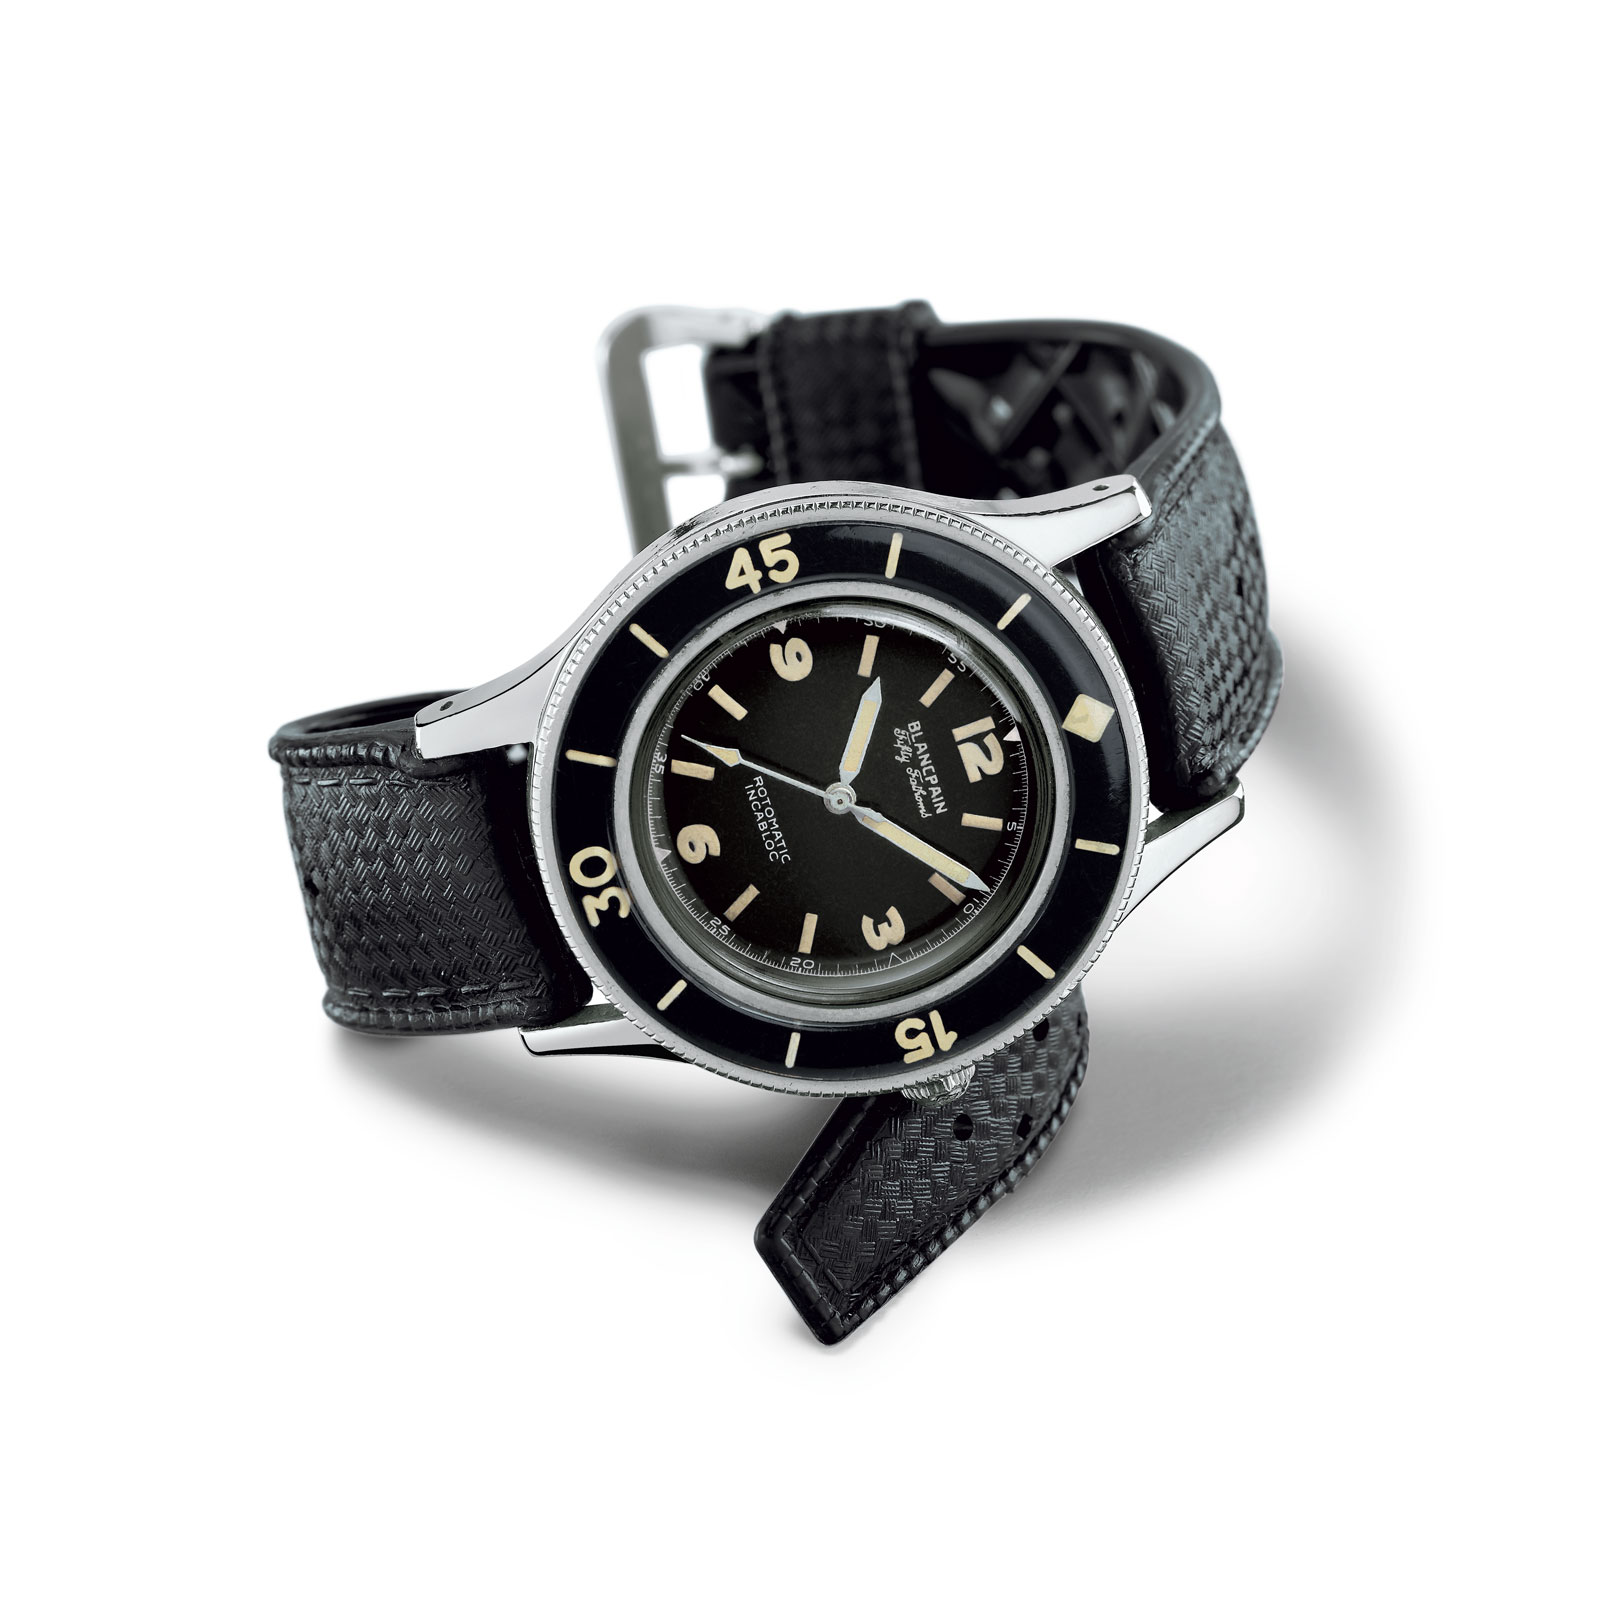 clip spamwatches national best com geographic watches models